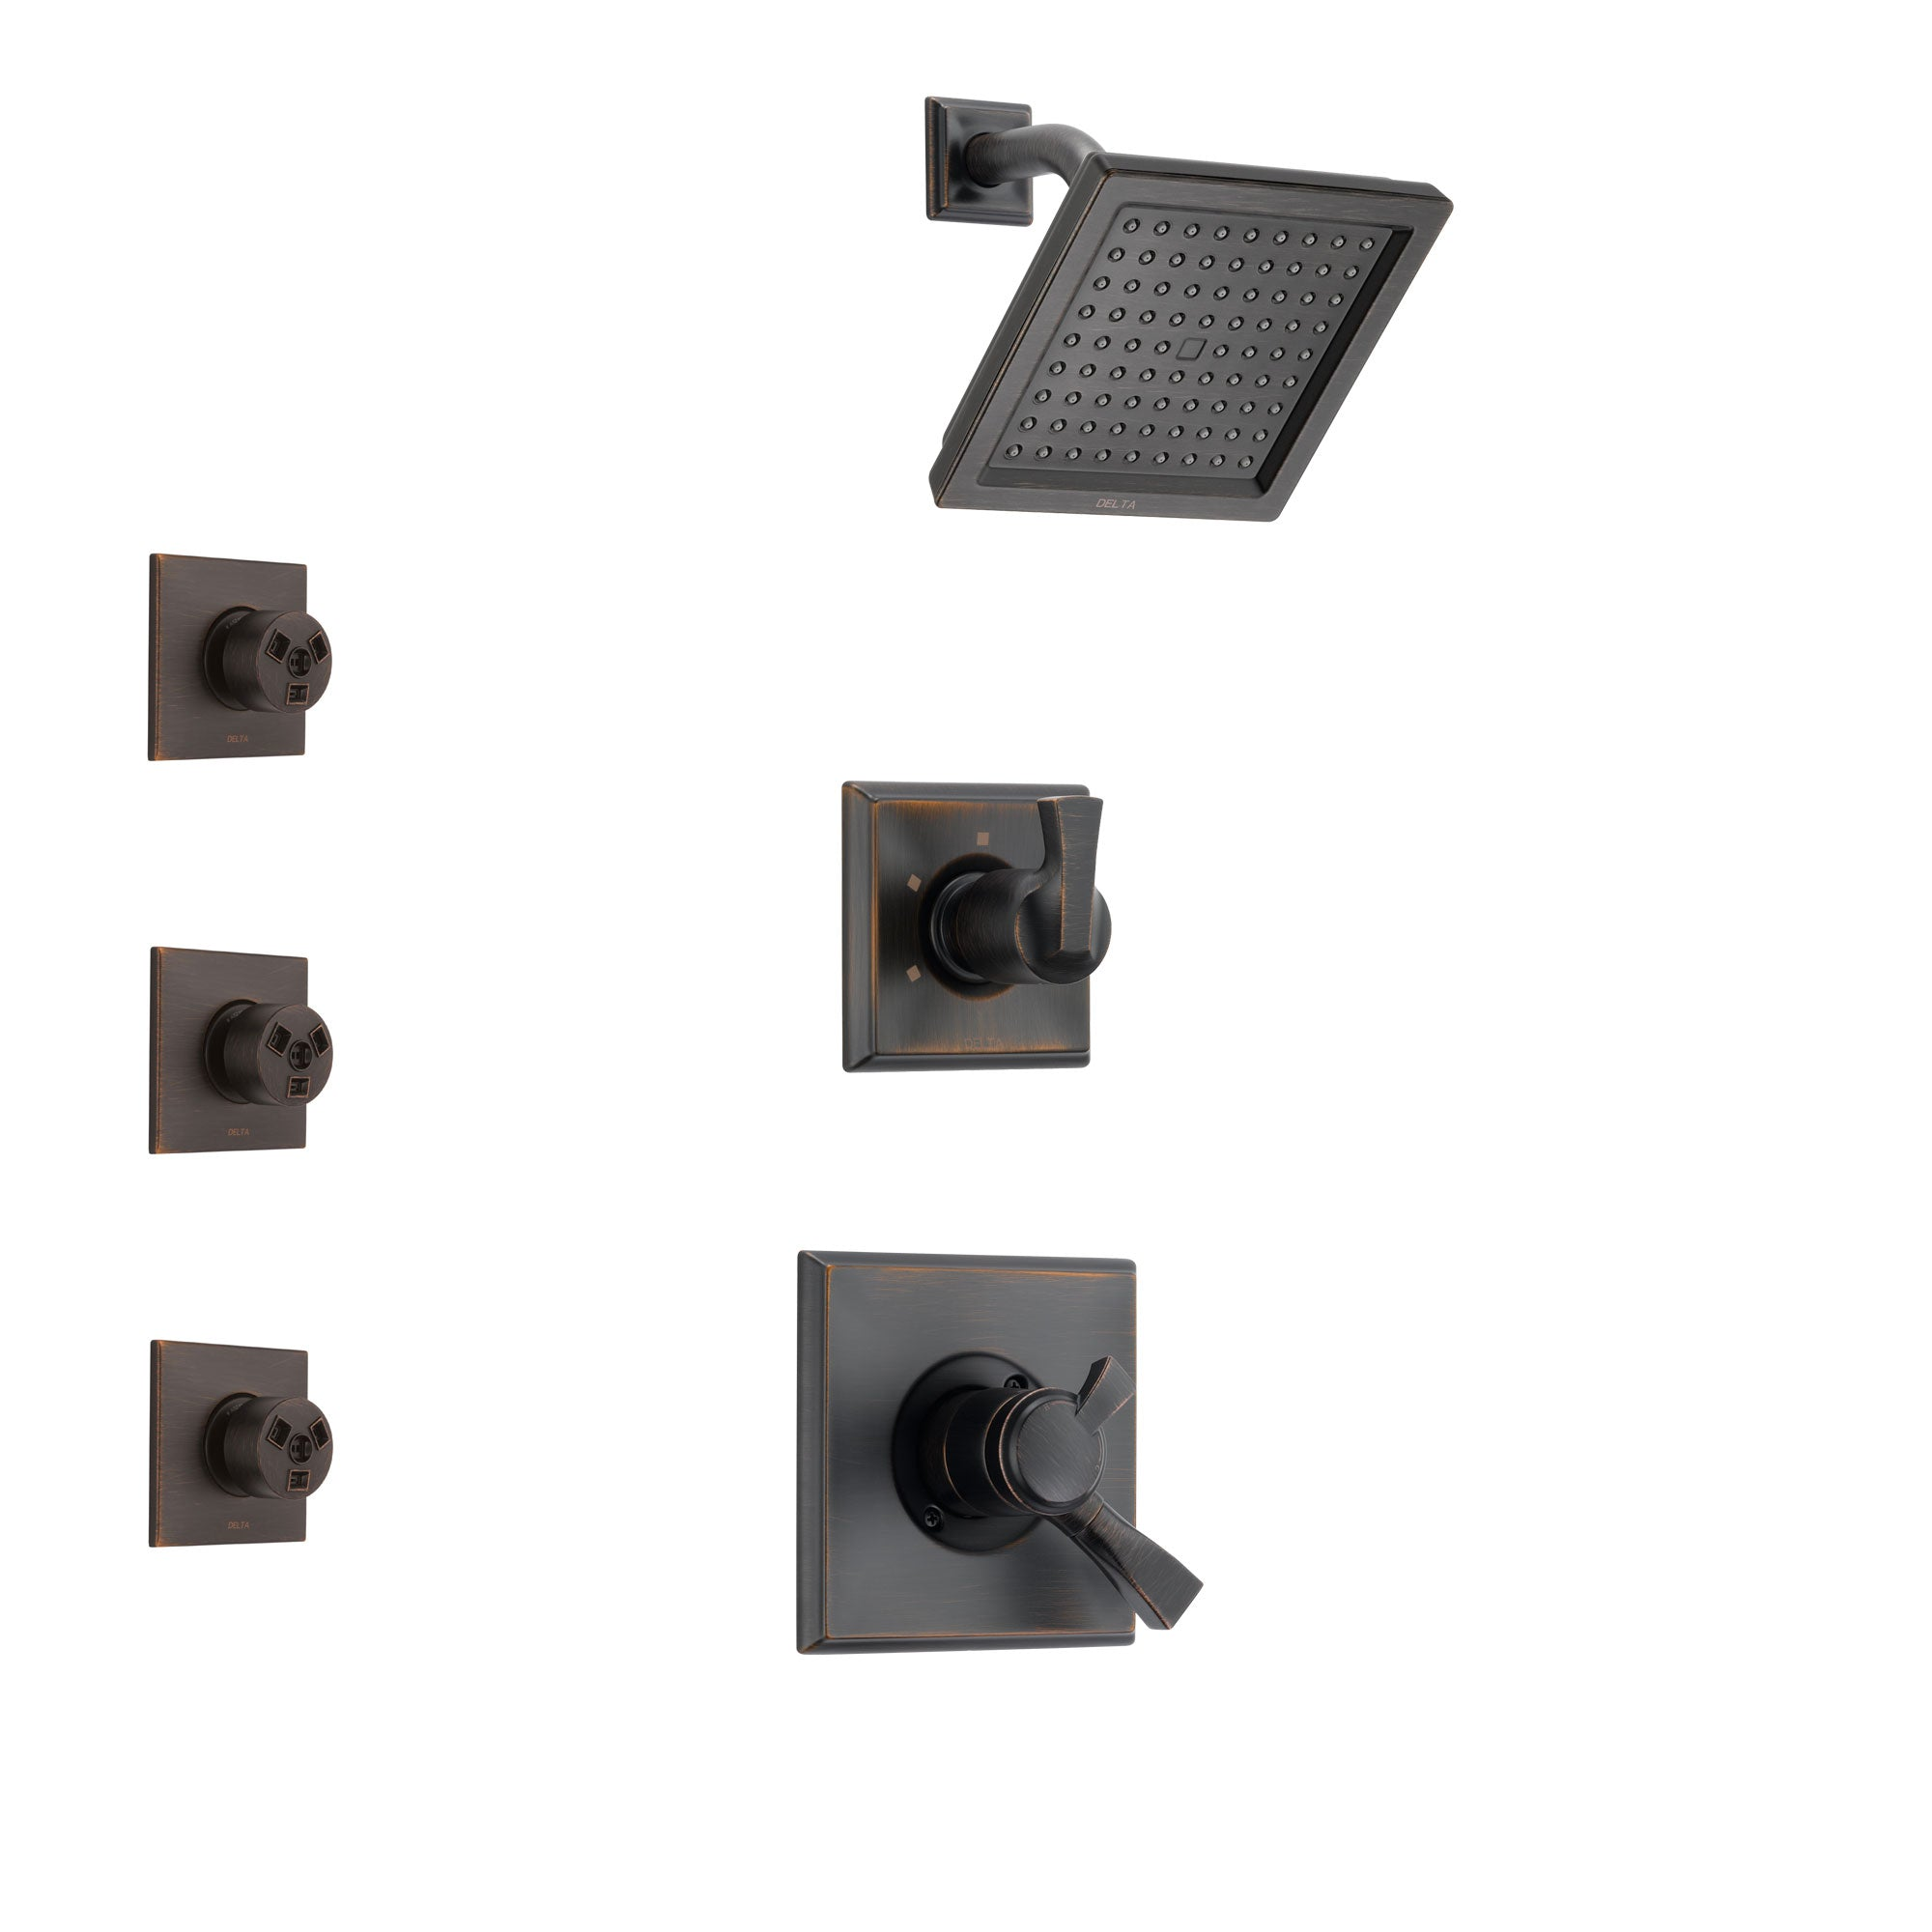 Delta Dryden Venetian Bronze Finish Shower System with Dual Control Handle, 3-Setting Diverter, Showerhead, and 3 Body Sprays SS172511RB1